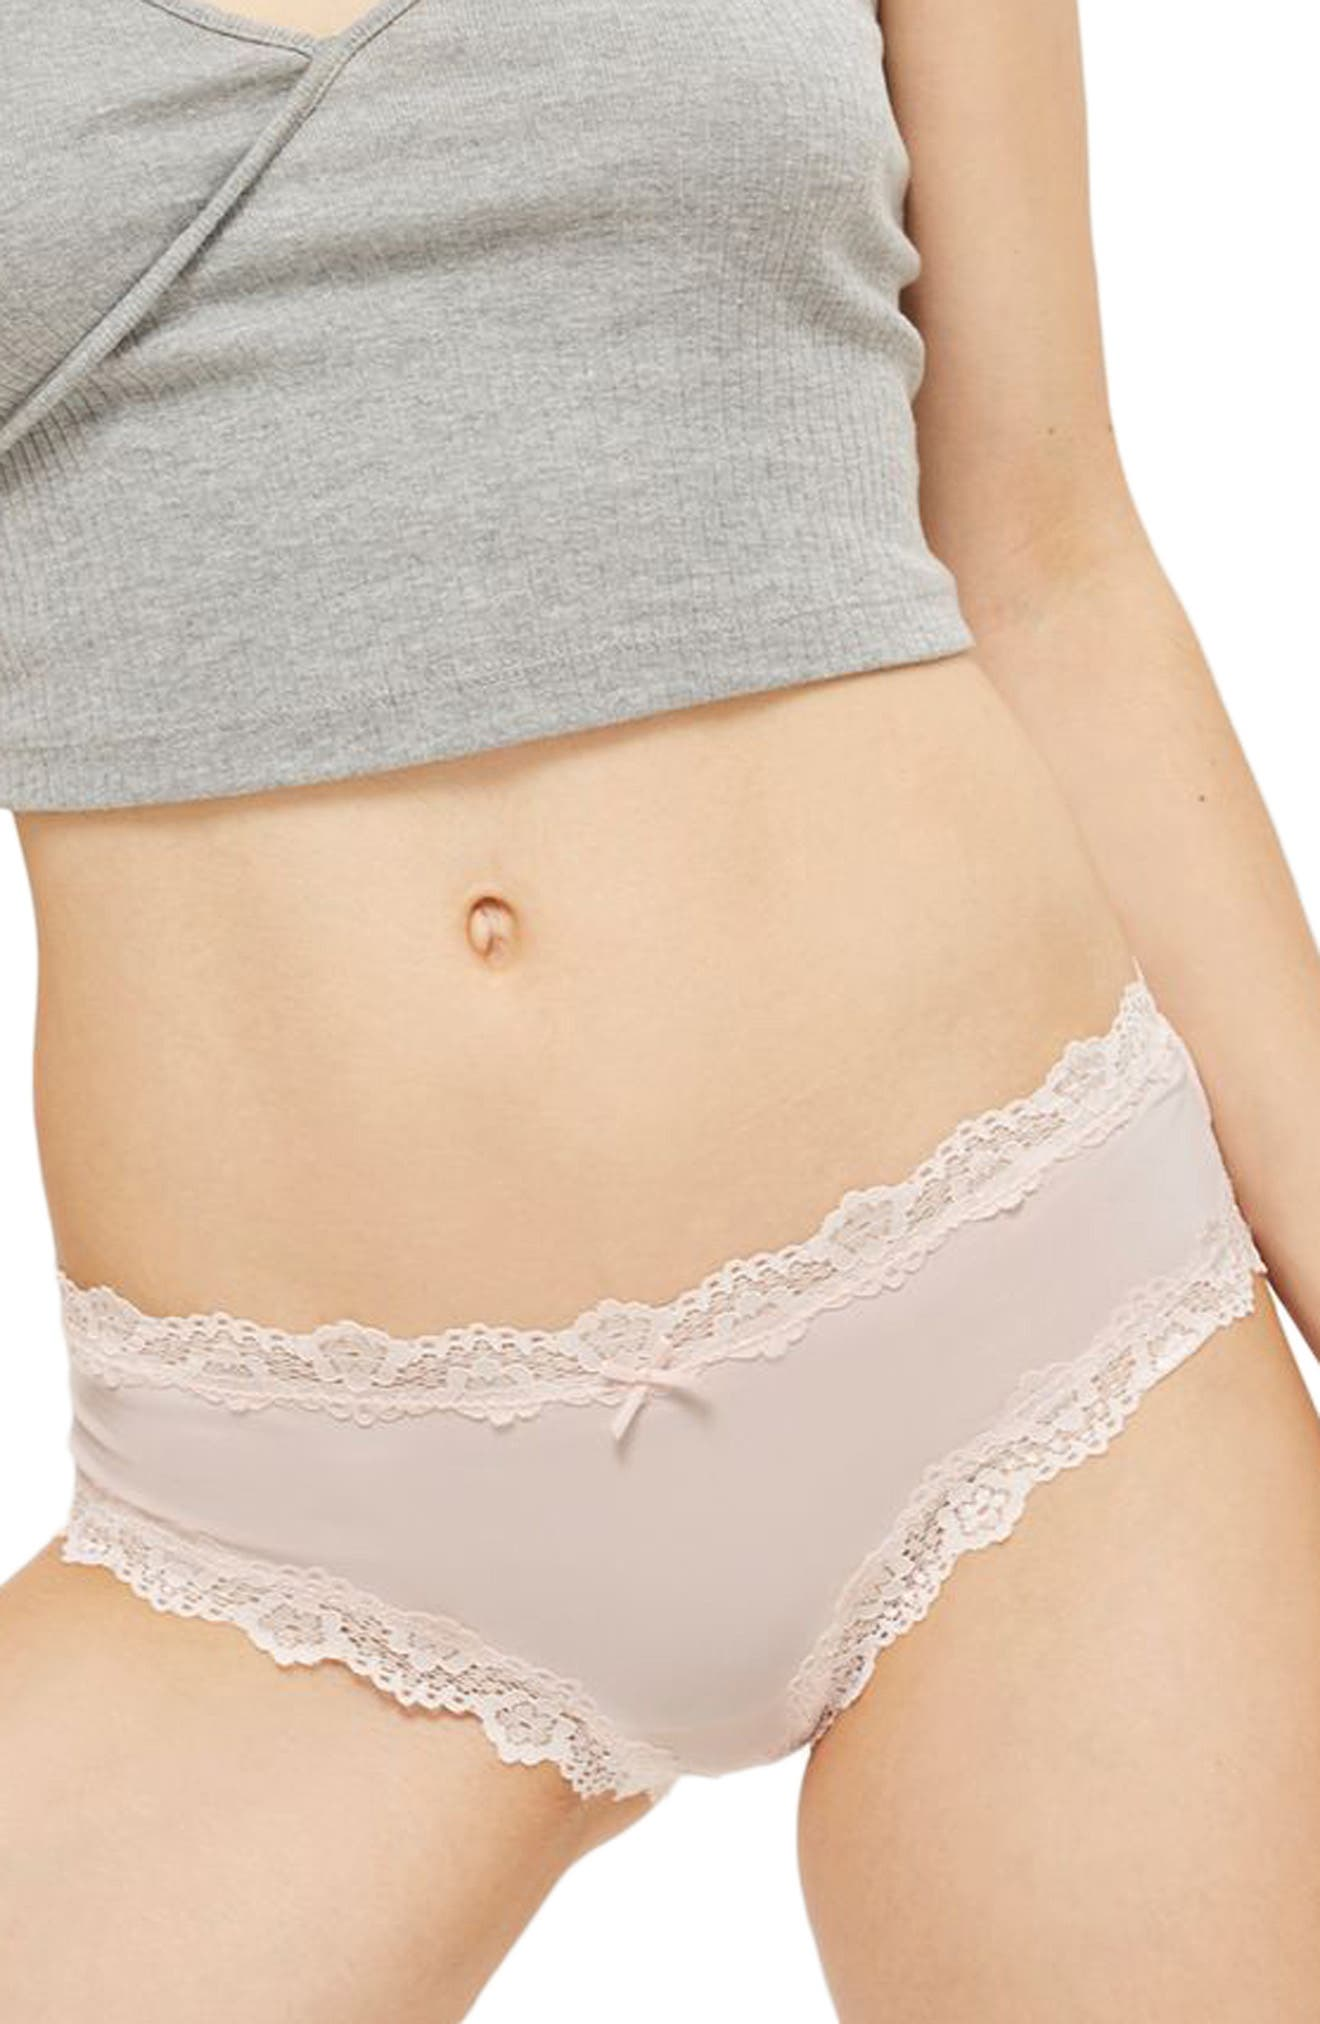 Main Image - Topshop Dorothy Lace Microfiber Hipster Briefs